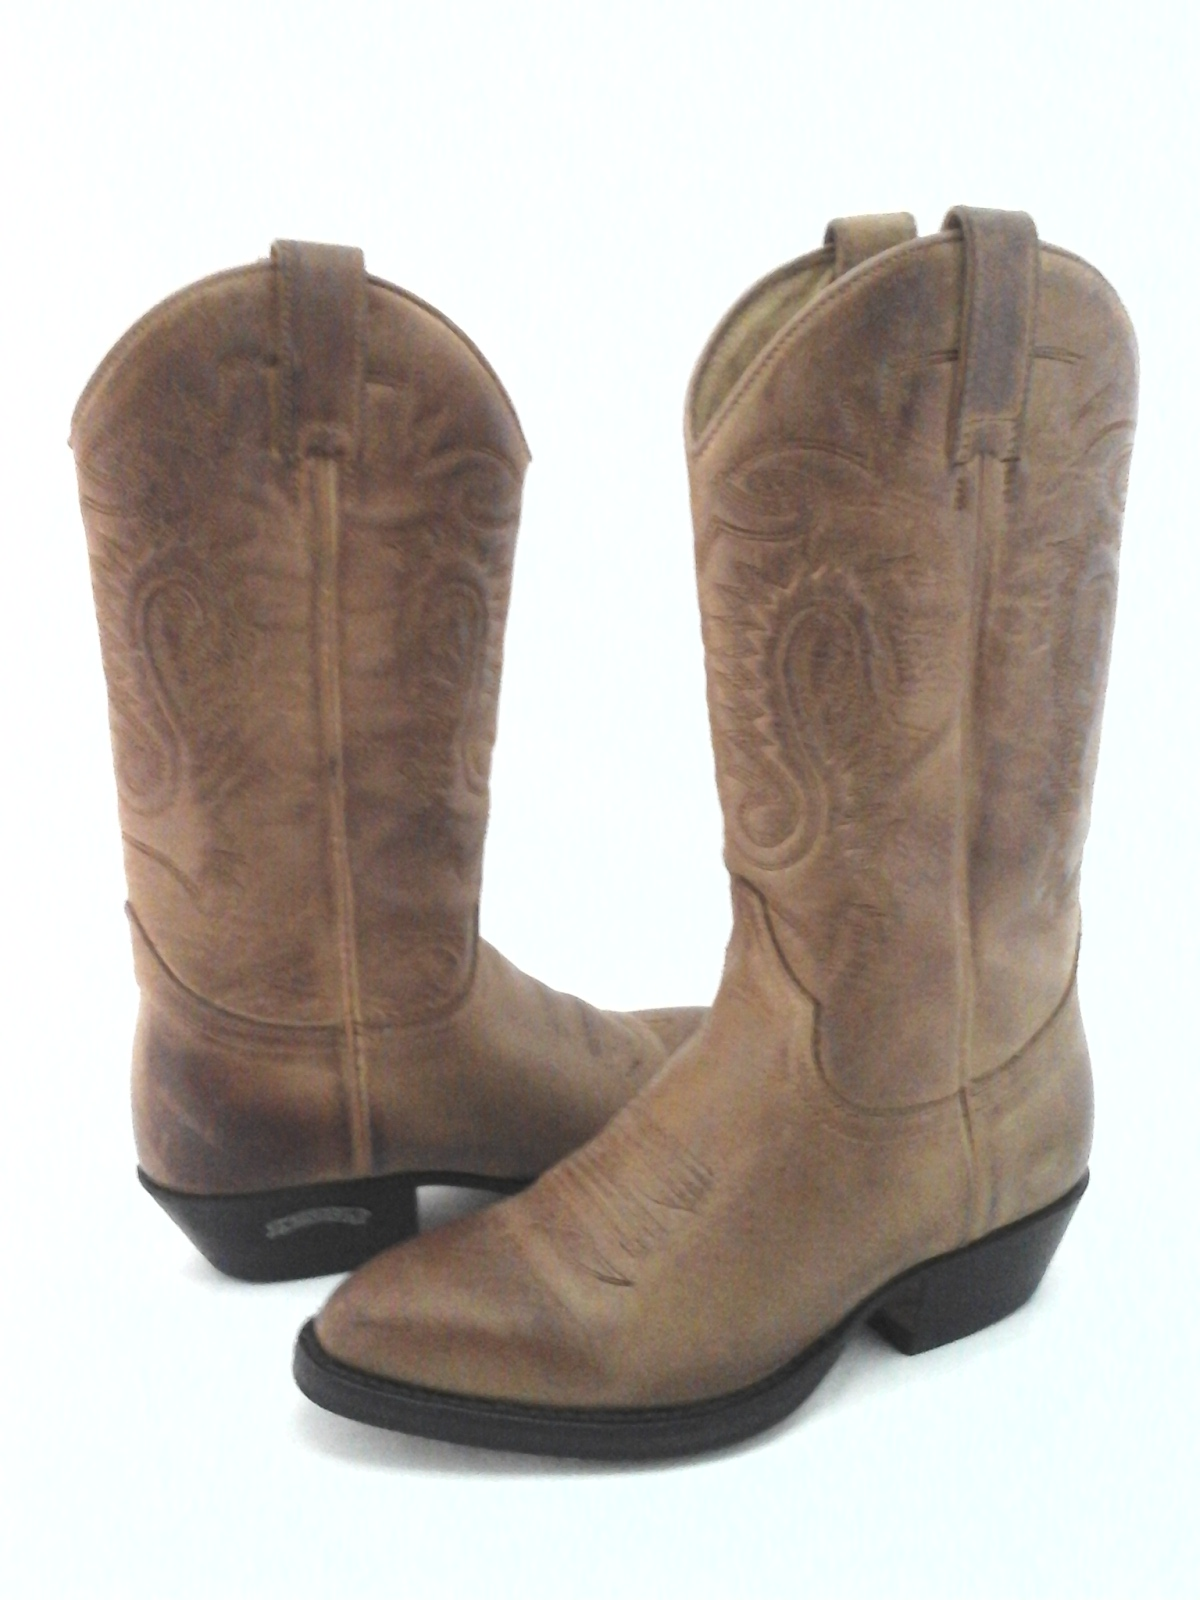 fc832e6683a SENDRA Cowboy Boots Tan Brown Leather Handmade in Spain Women's US 6 ...